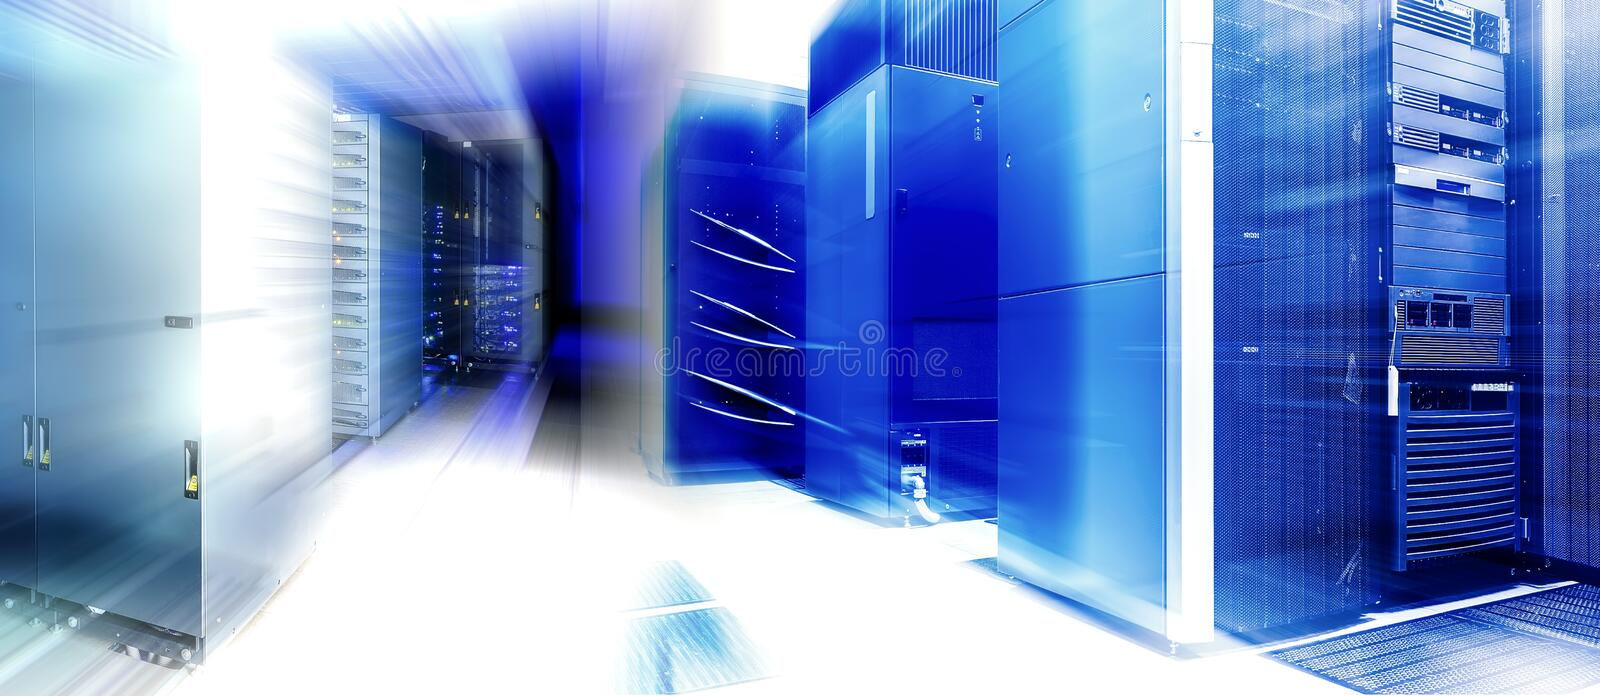 Room with rows of server hardware in data center royalty free stock photos